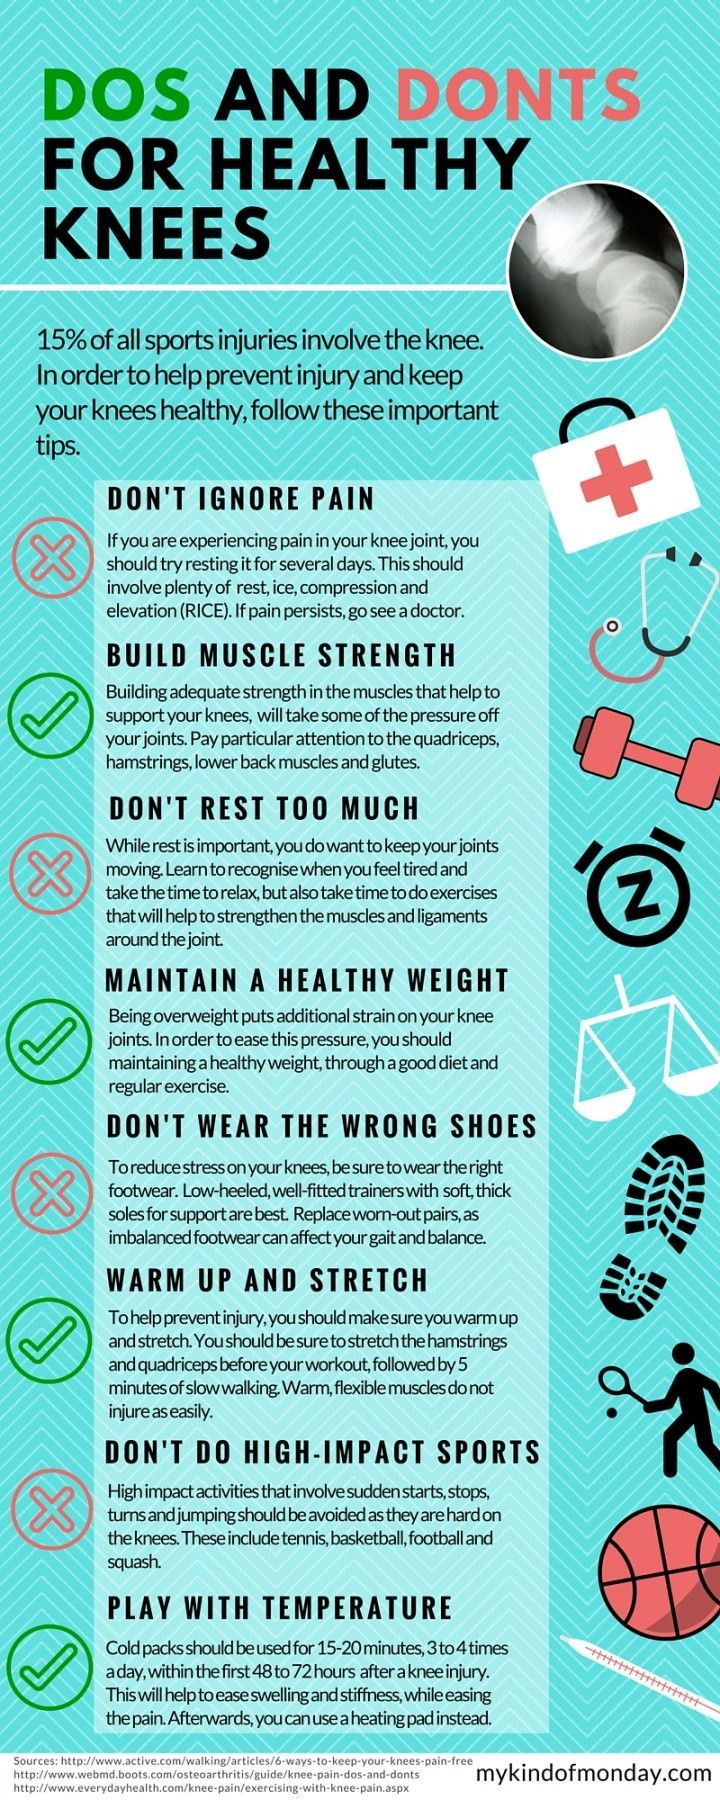 Do's and don'ts workout